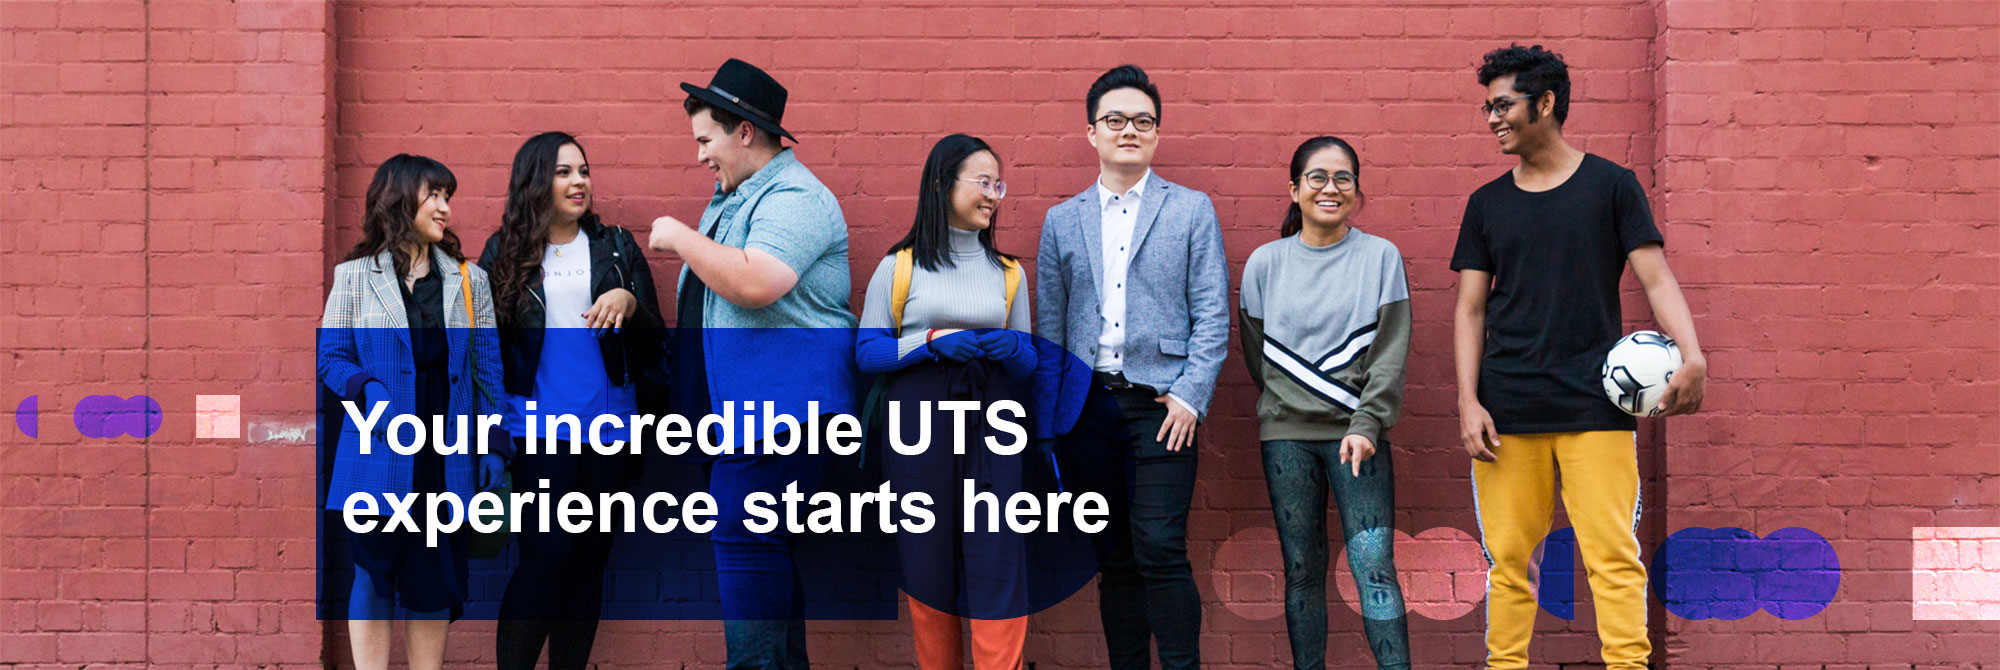 Your incredible UTS experience starts here